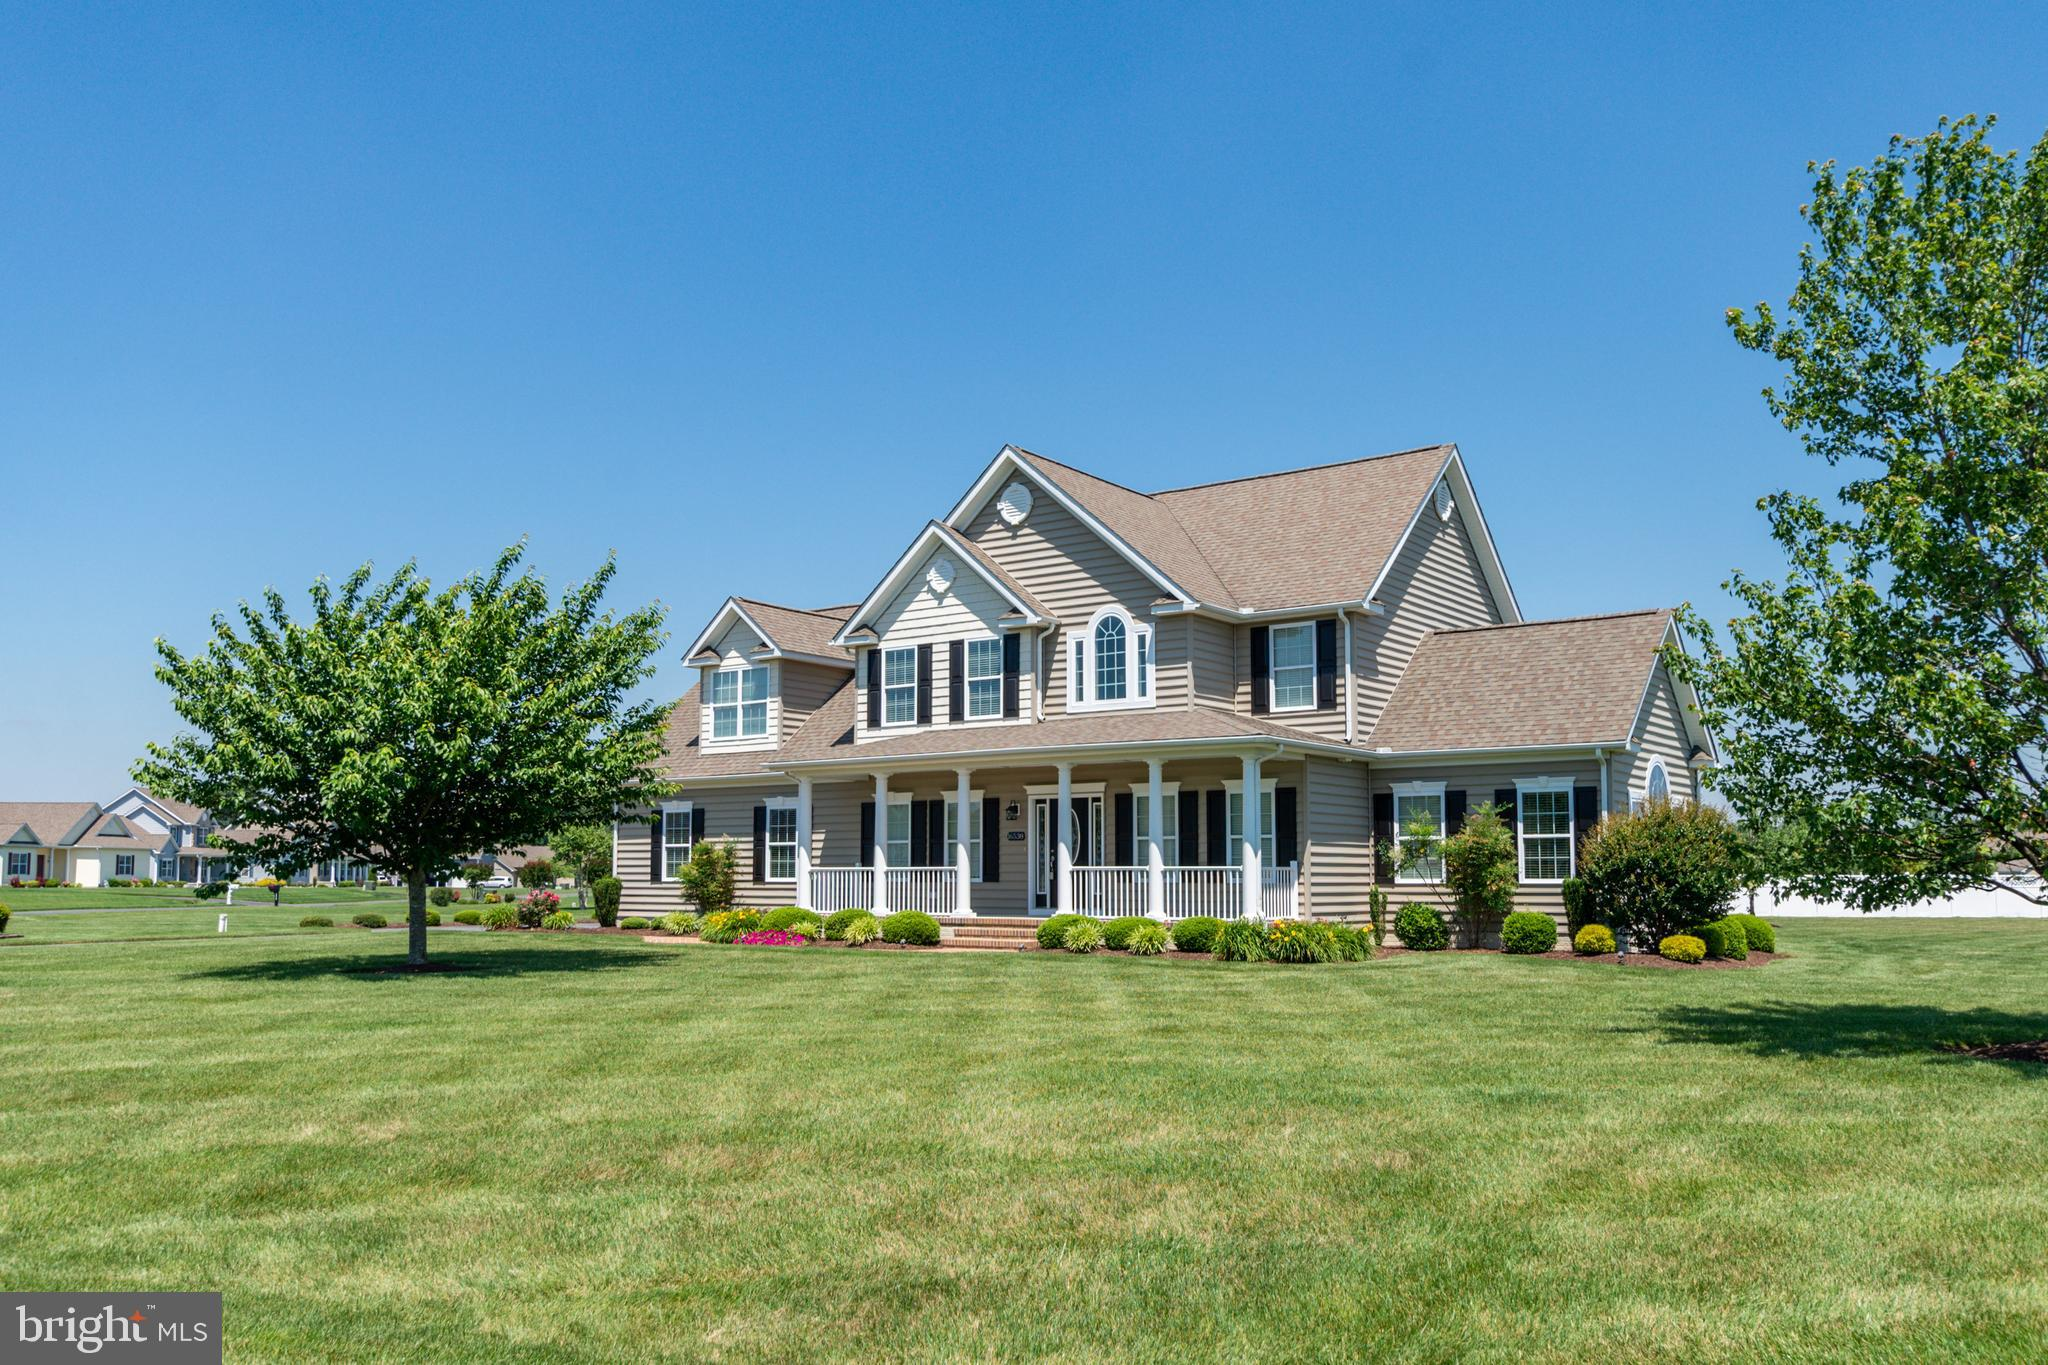 Don't miss this one, located close enough to the Delaware beaches, tax free shopping and local restaurants yet far enough away to stay away from the conjestion of Lewes & Rehoboth Beach.   This stunning 4 bedroom and additional bonus room,  2.5 bathroom home is situated in the quiet community of River Rock Run. The bright and airy floorplan features an open layout with hardwood floors through the main areas, sunroom, formal dining room, granite countertops, stainless appliances, covered back porch, paver patio, unfinished basement and more situated on a 1.09 acre lot with room for a swimming pool.  This home has it all.  Call to schedule your appointment today!